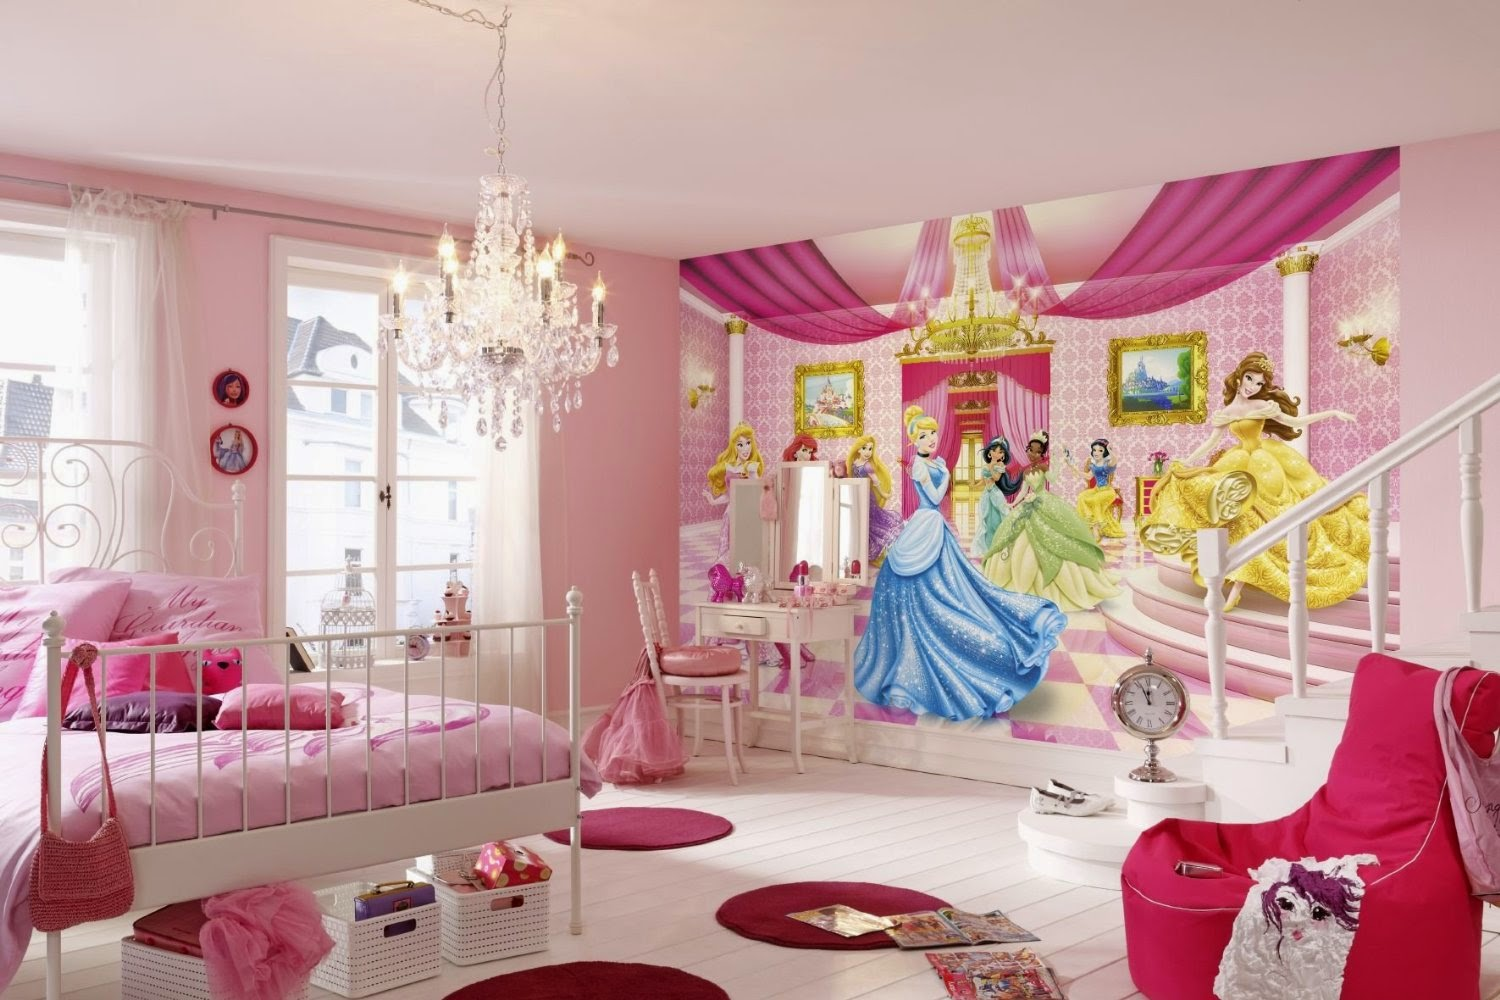 Dormitorio Barbie Habitación Estilo Princesa Ideas Para Decorar Dormitorios